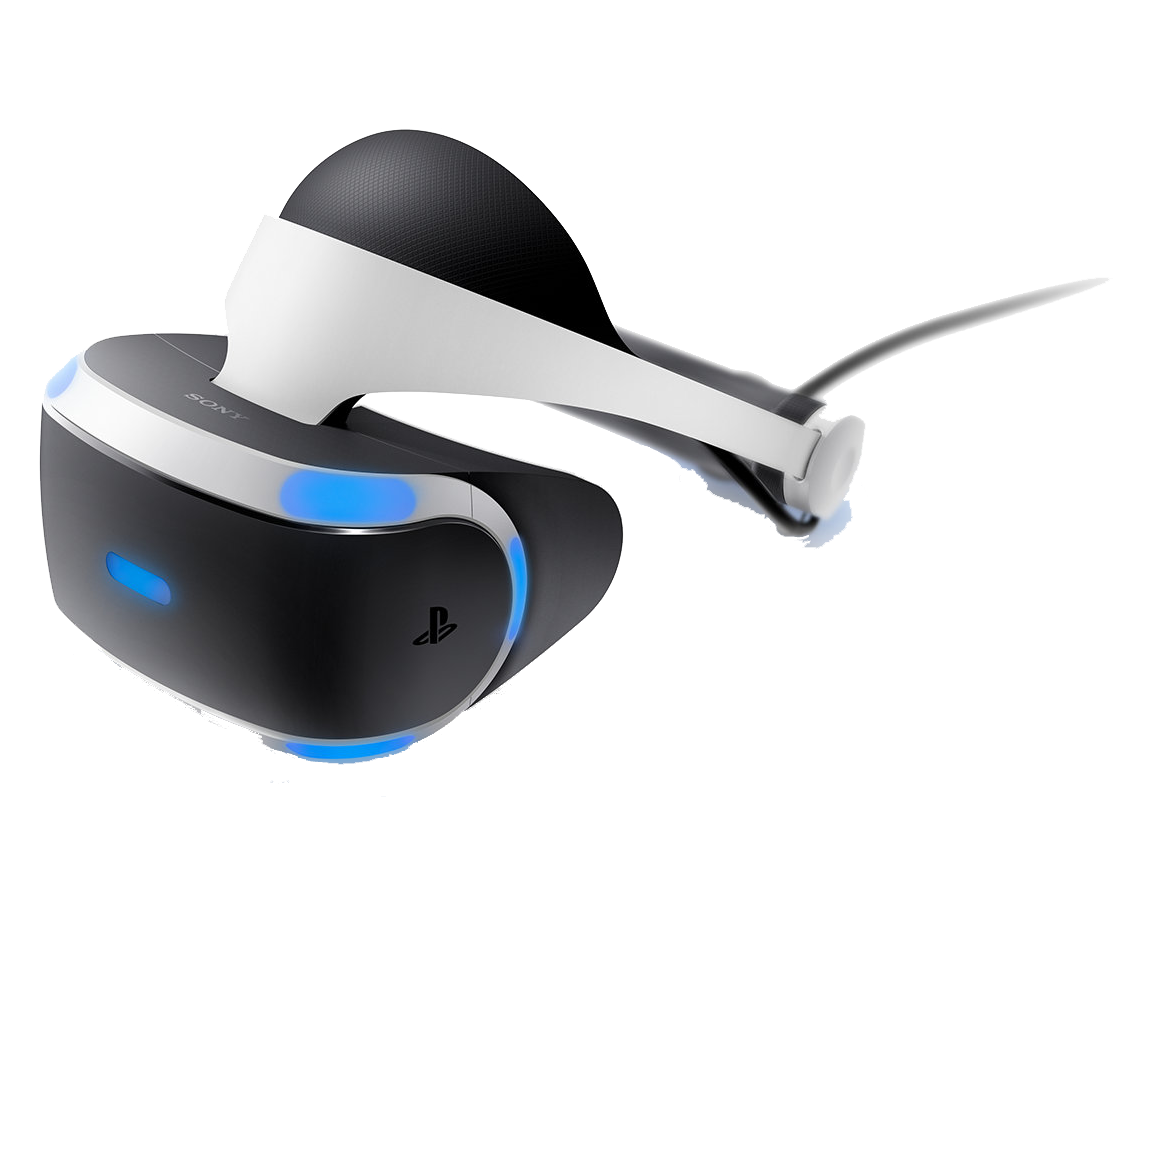 Pin By Morbidstix On Awesome New Toys Sony Playstation Vr Playstation Vr Ps4 Virtual Reality